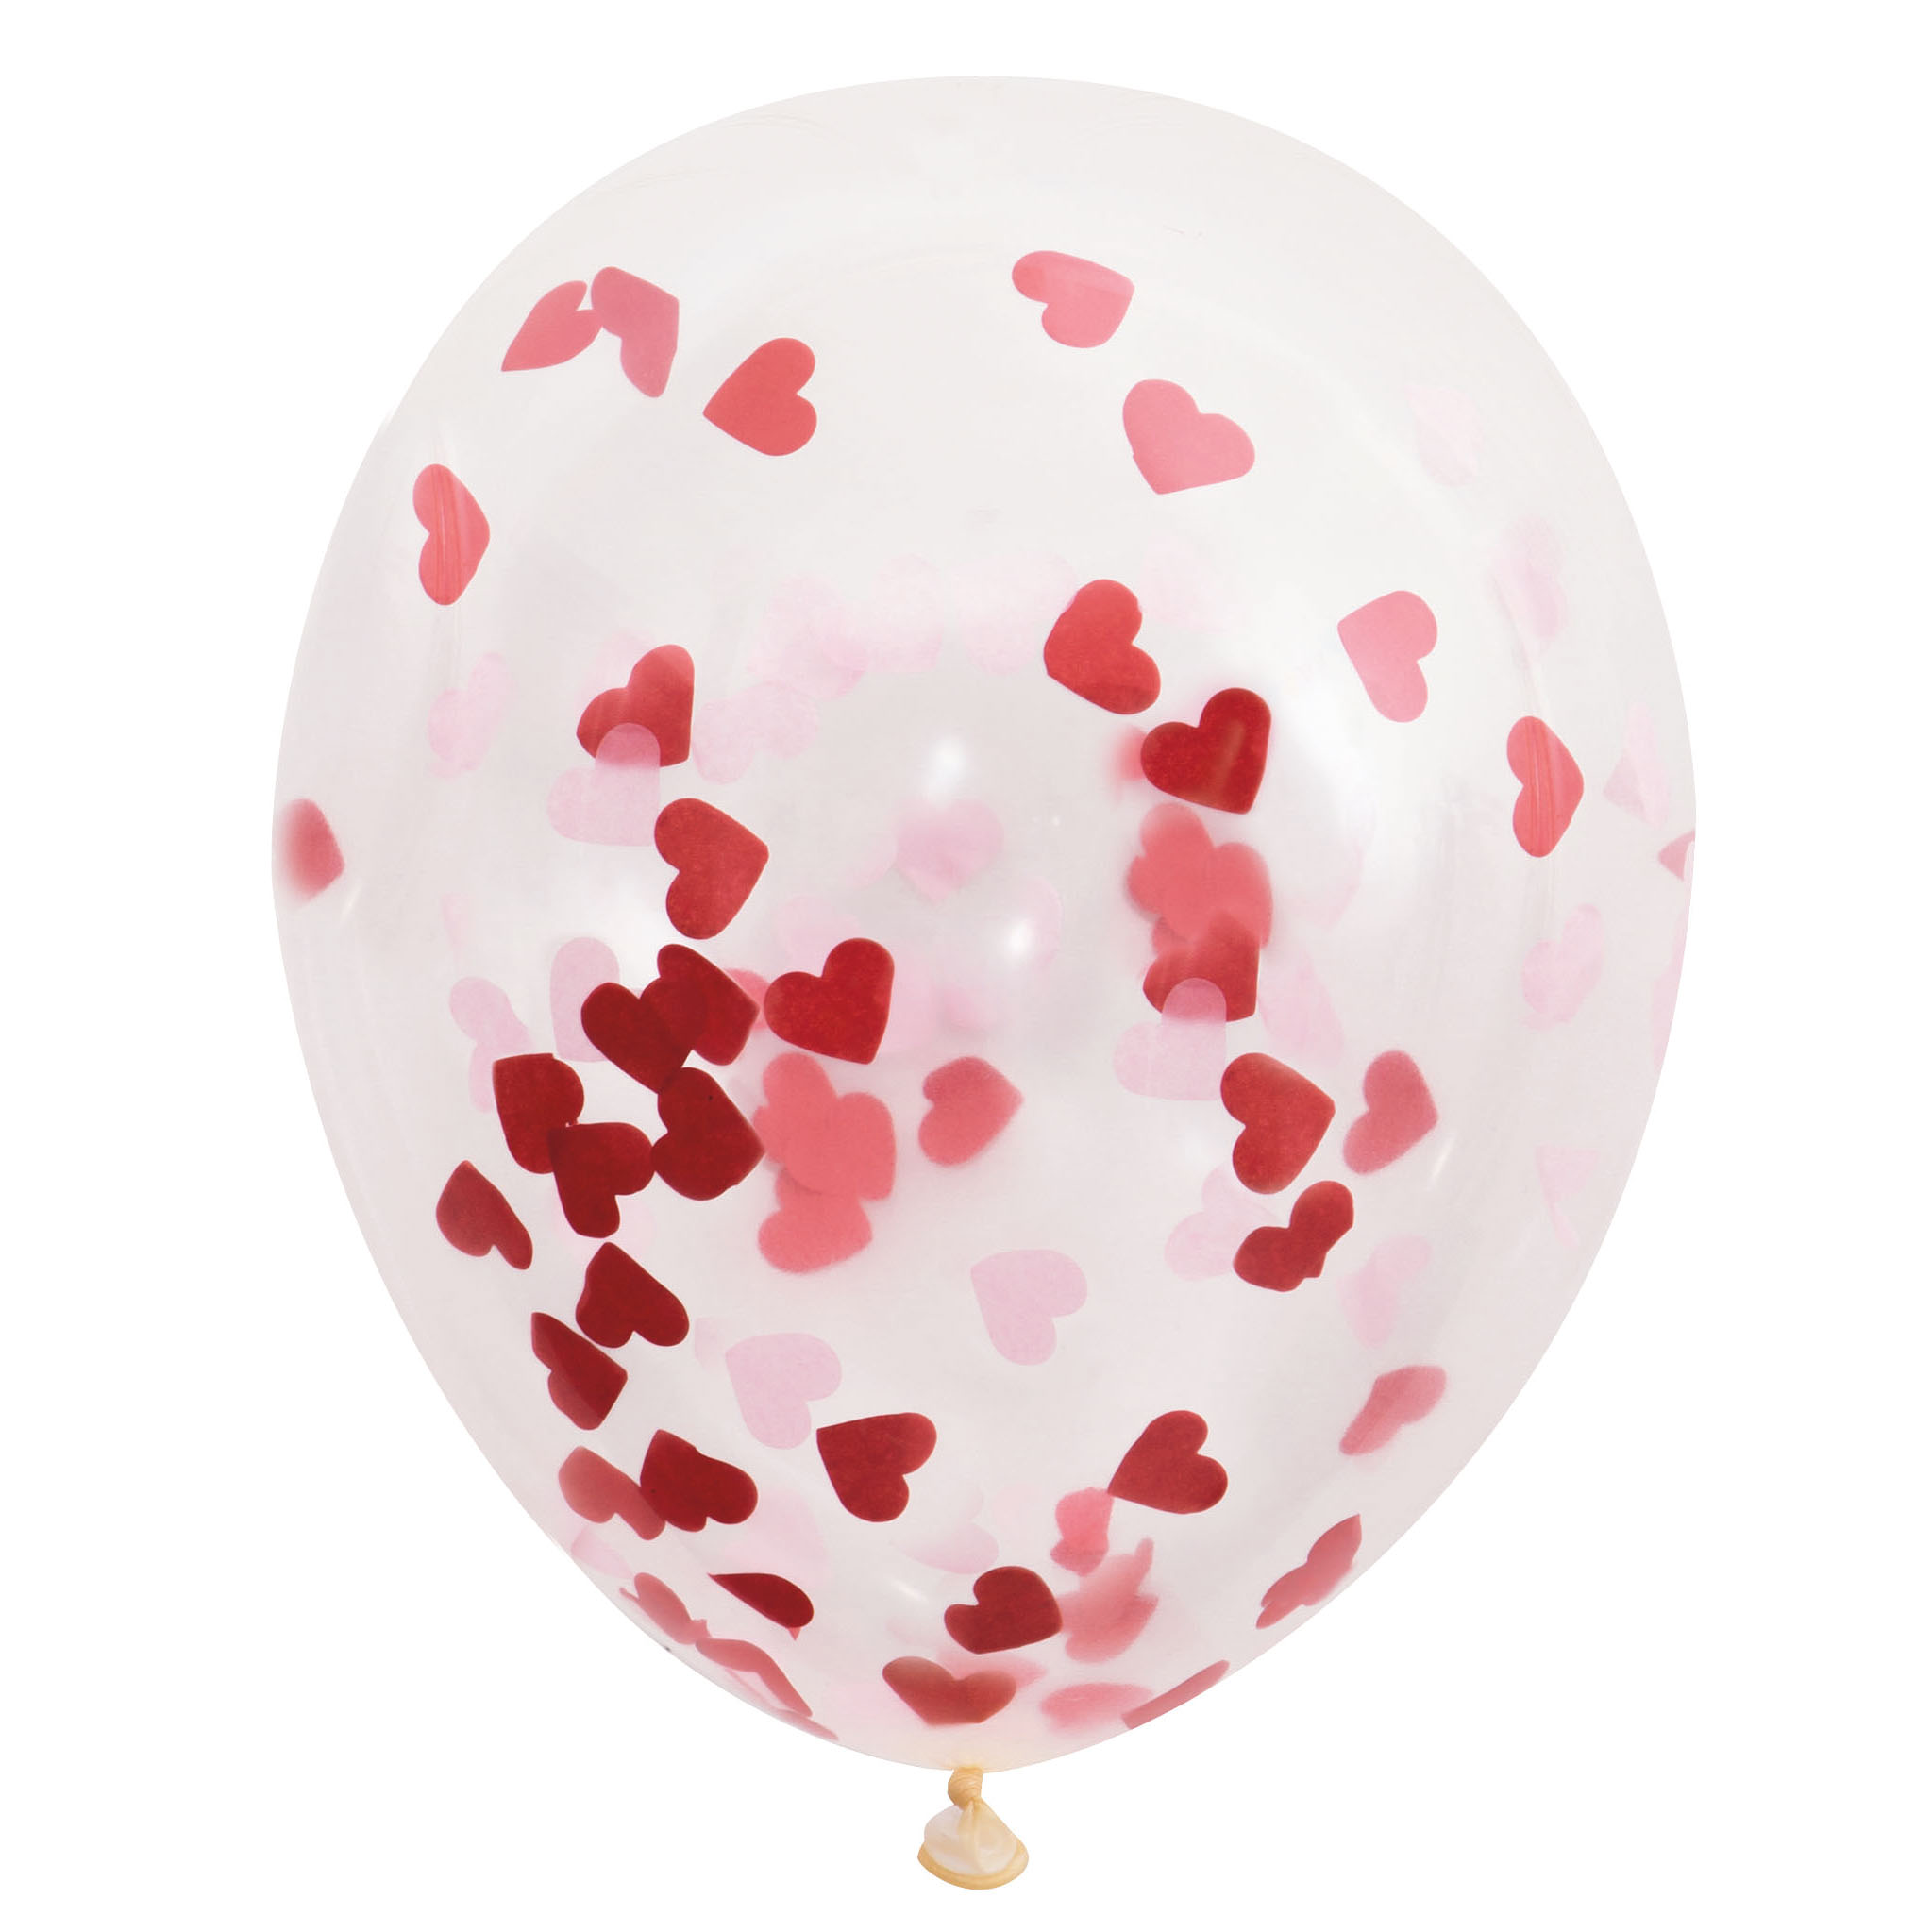 Latex Heart Valentine's Day Confetti Balloons, 16 in, Red & Pink, 5ct